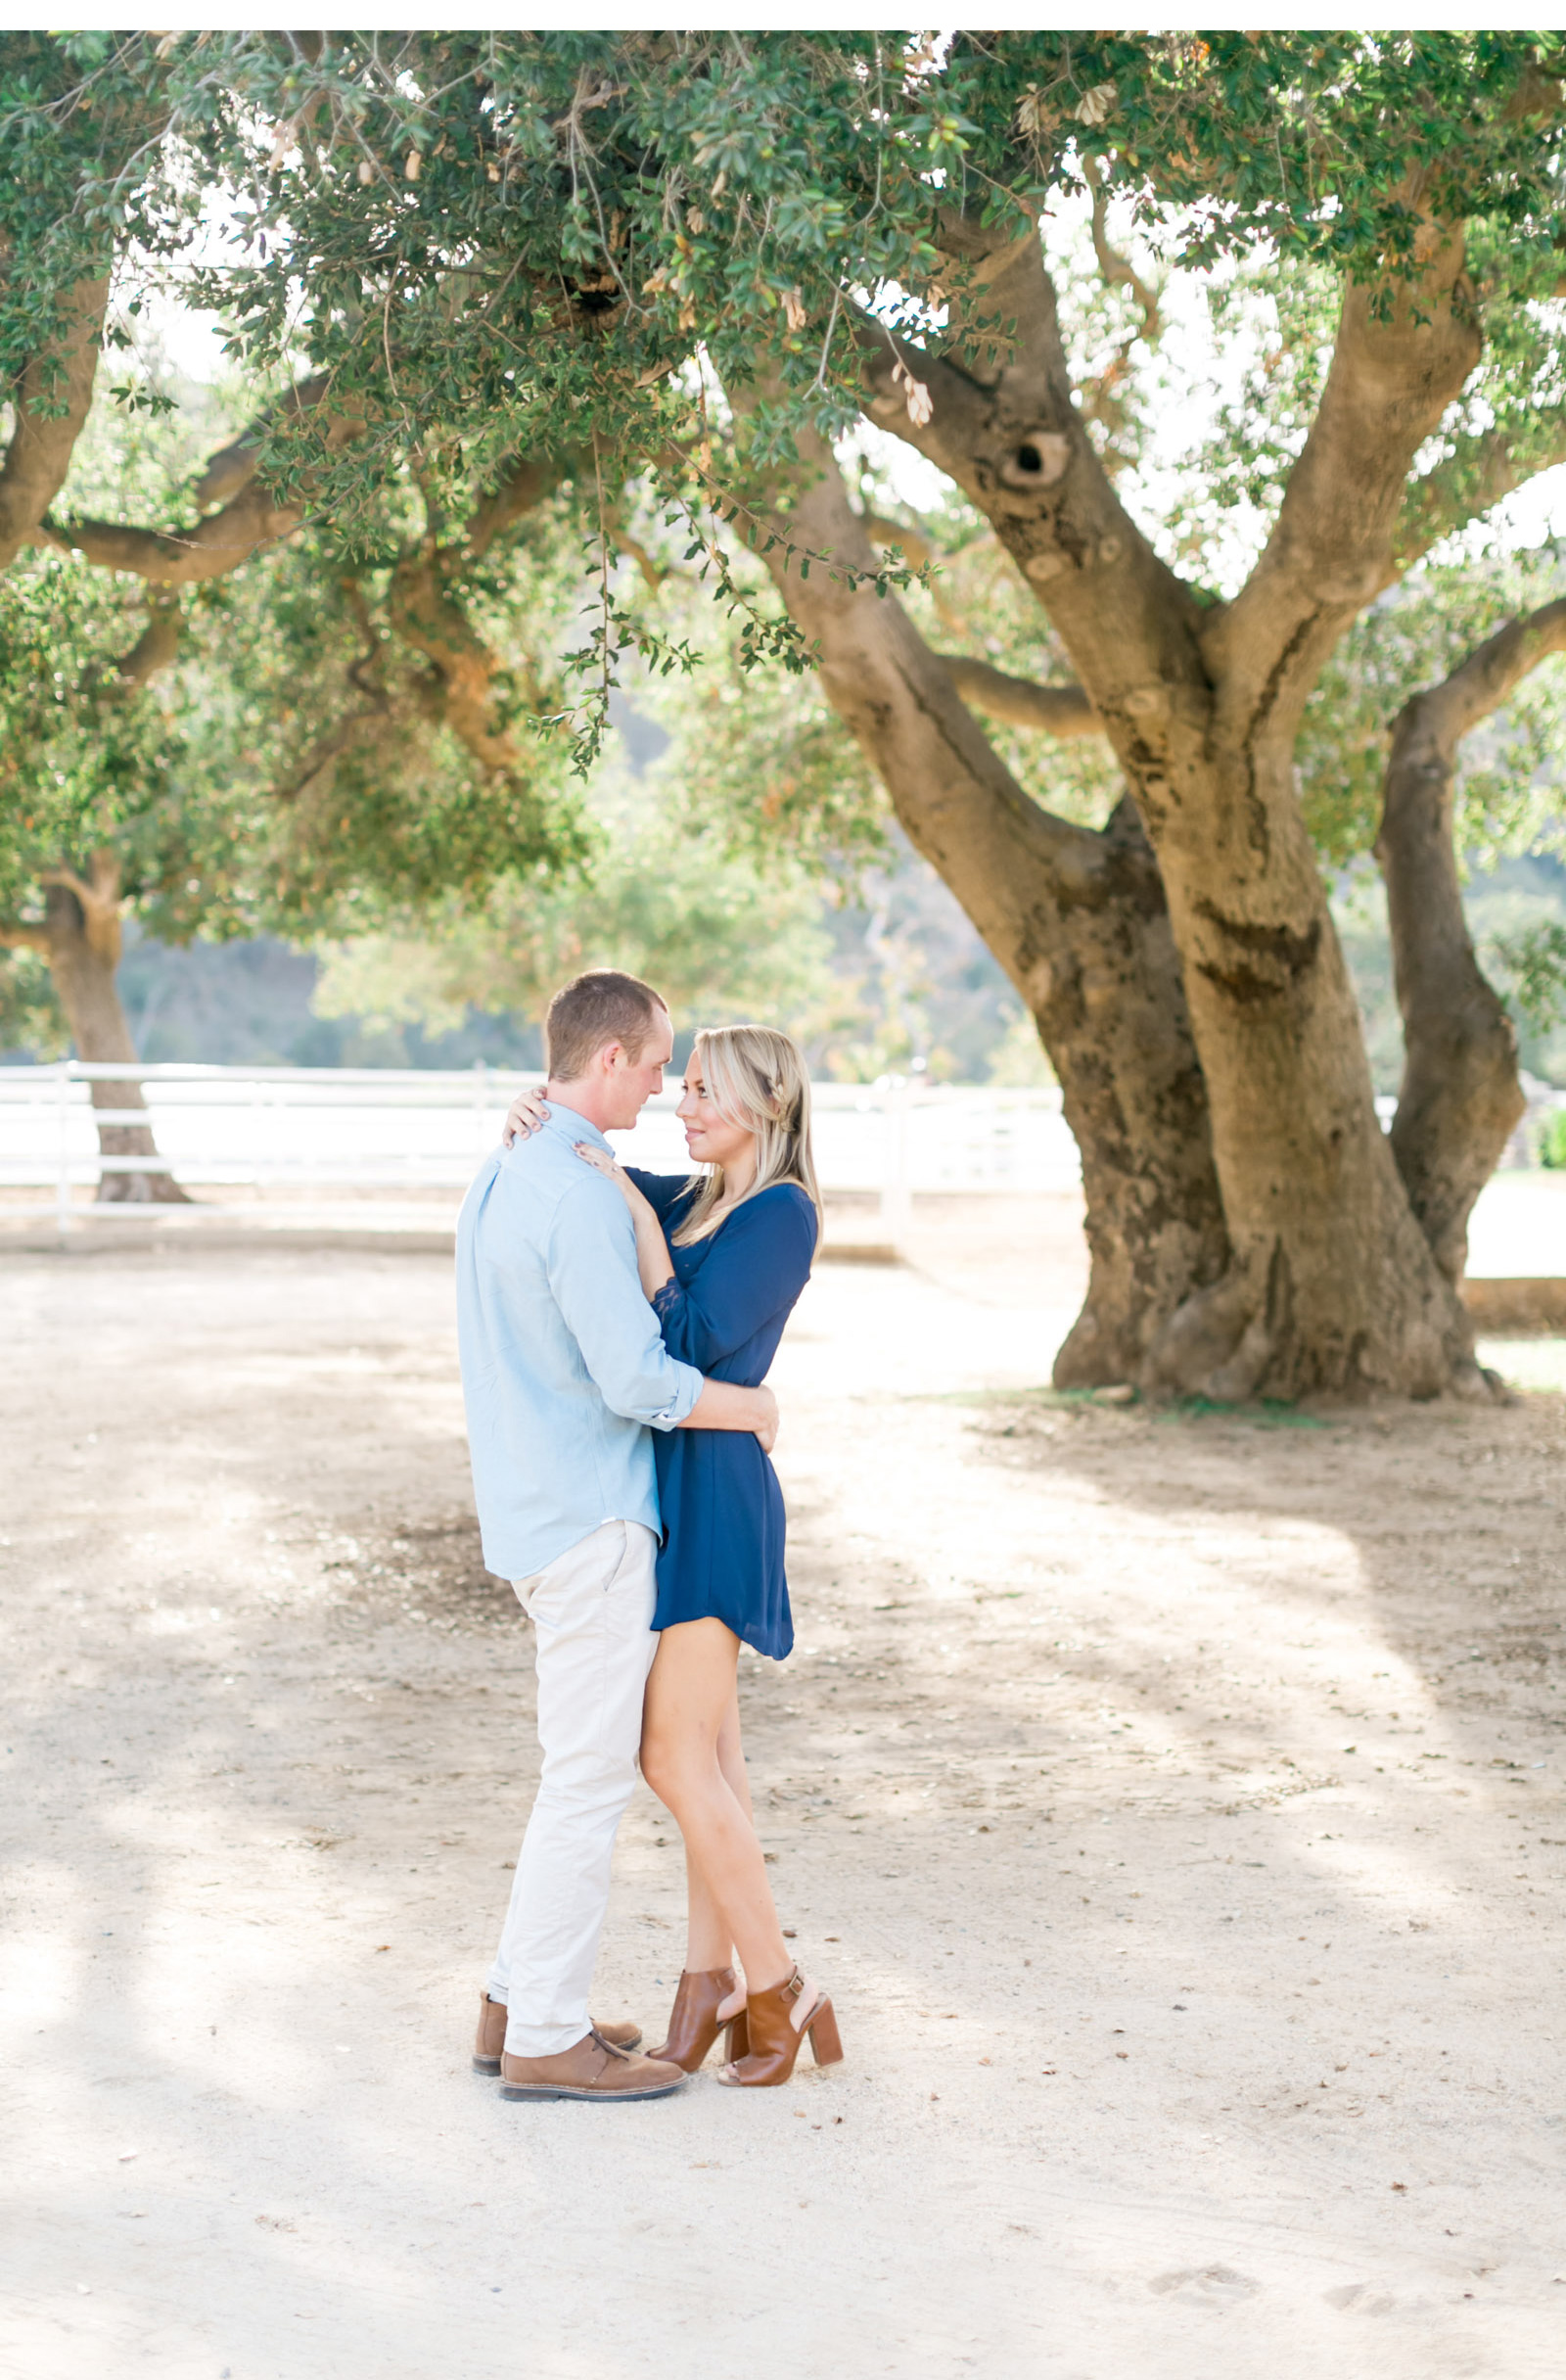 Style-Me-Pretty-Engagement-Natalie-Schutt-Photography_05.jpg